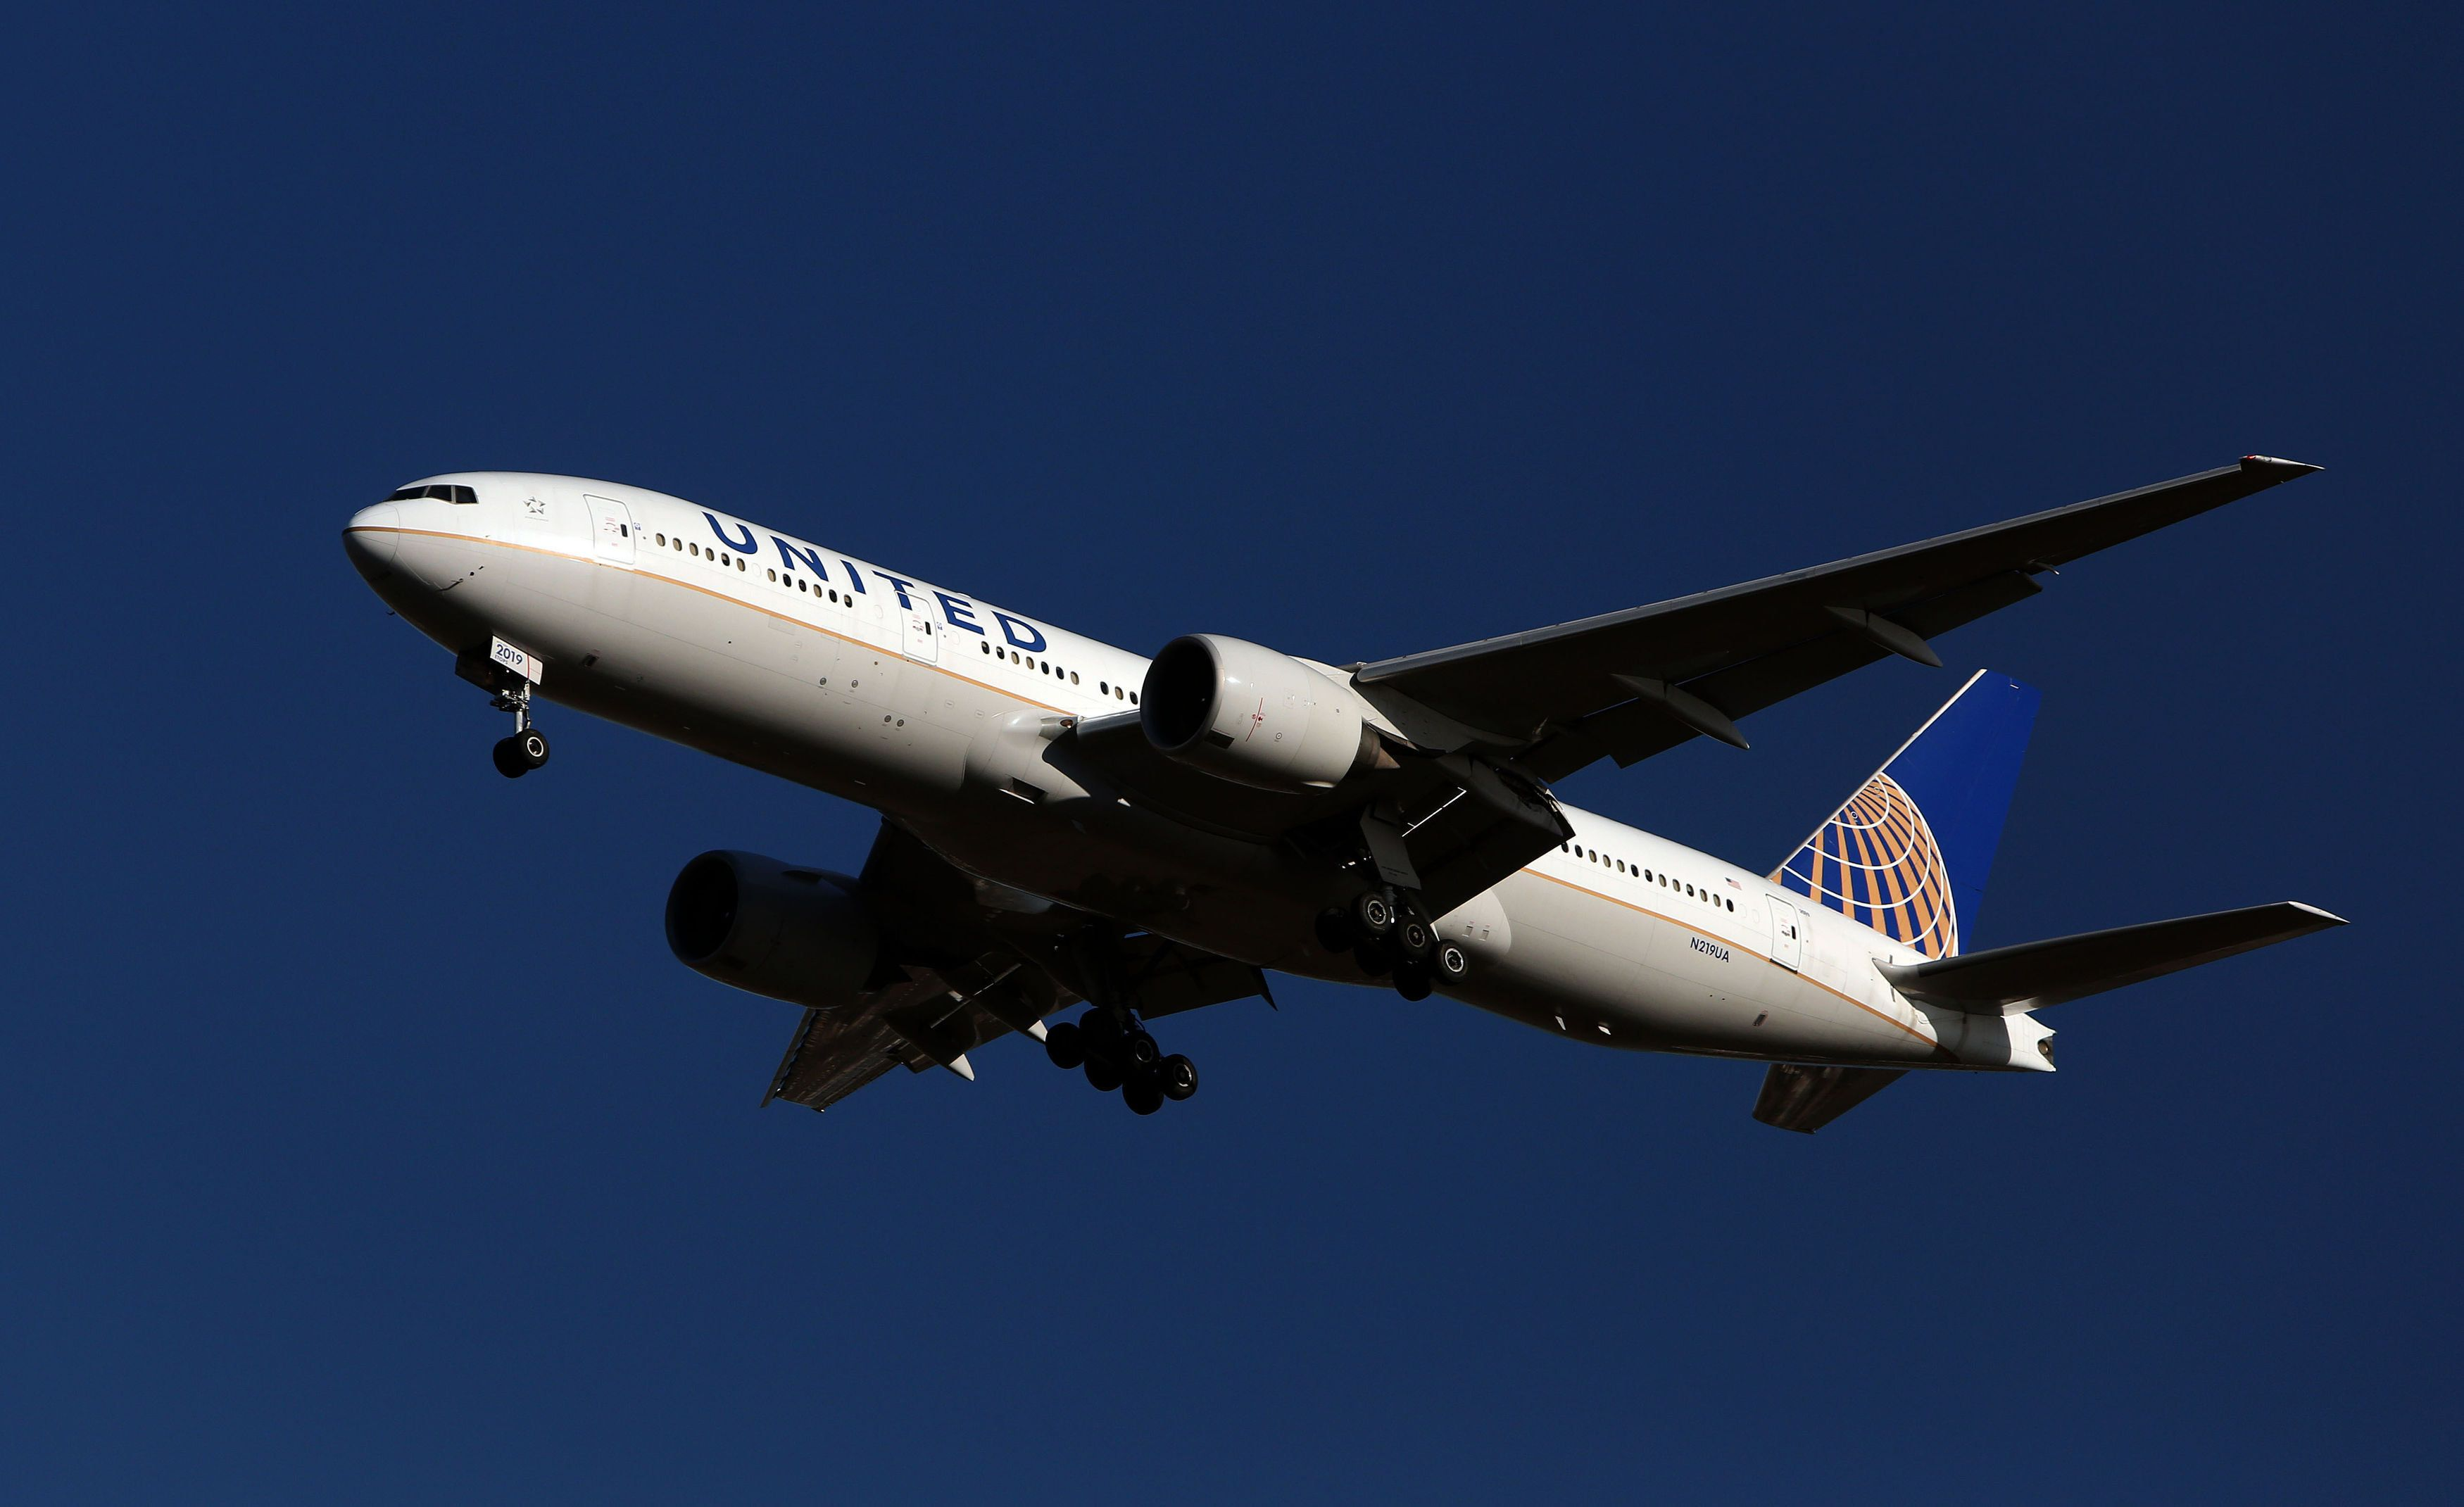 United Airlines has had a number of PR